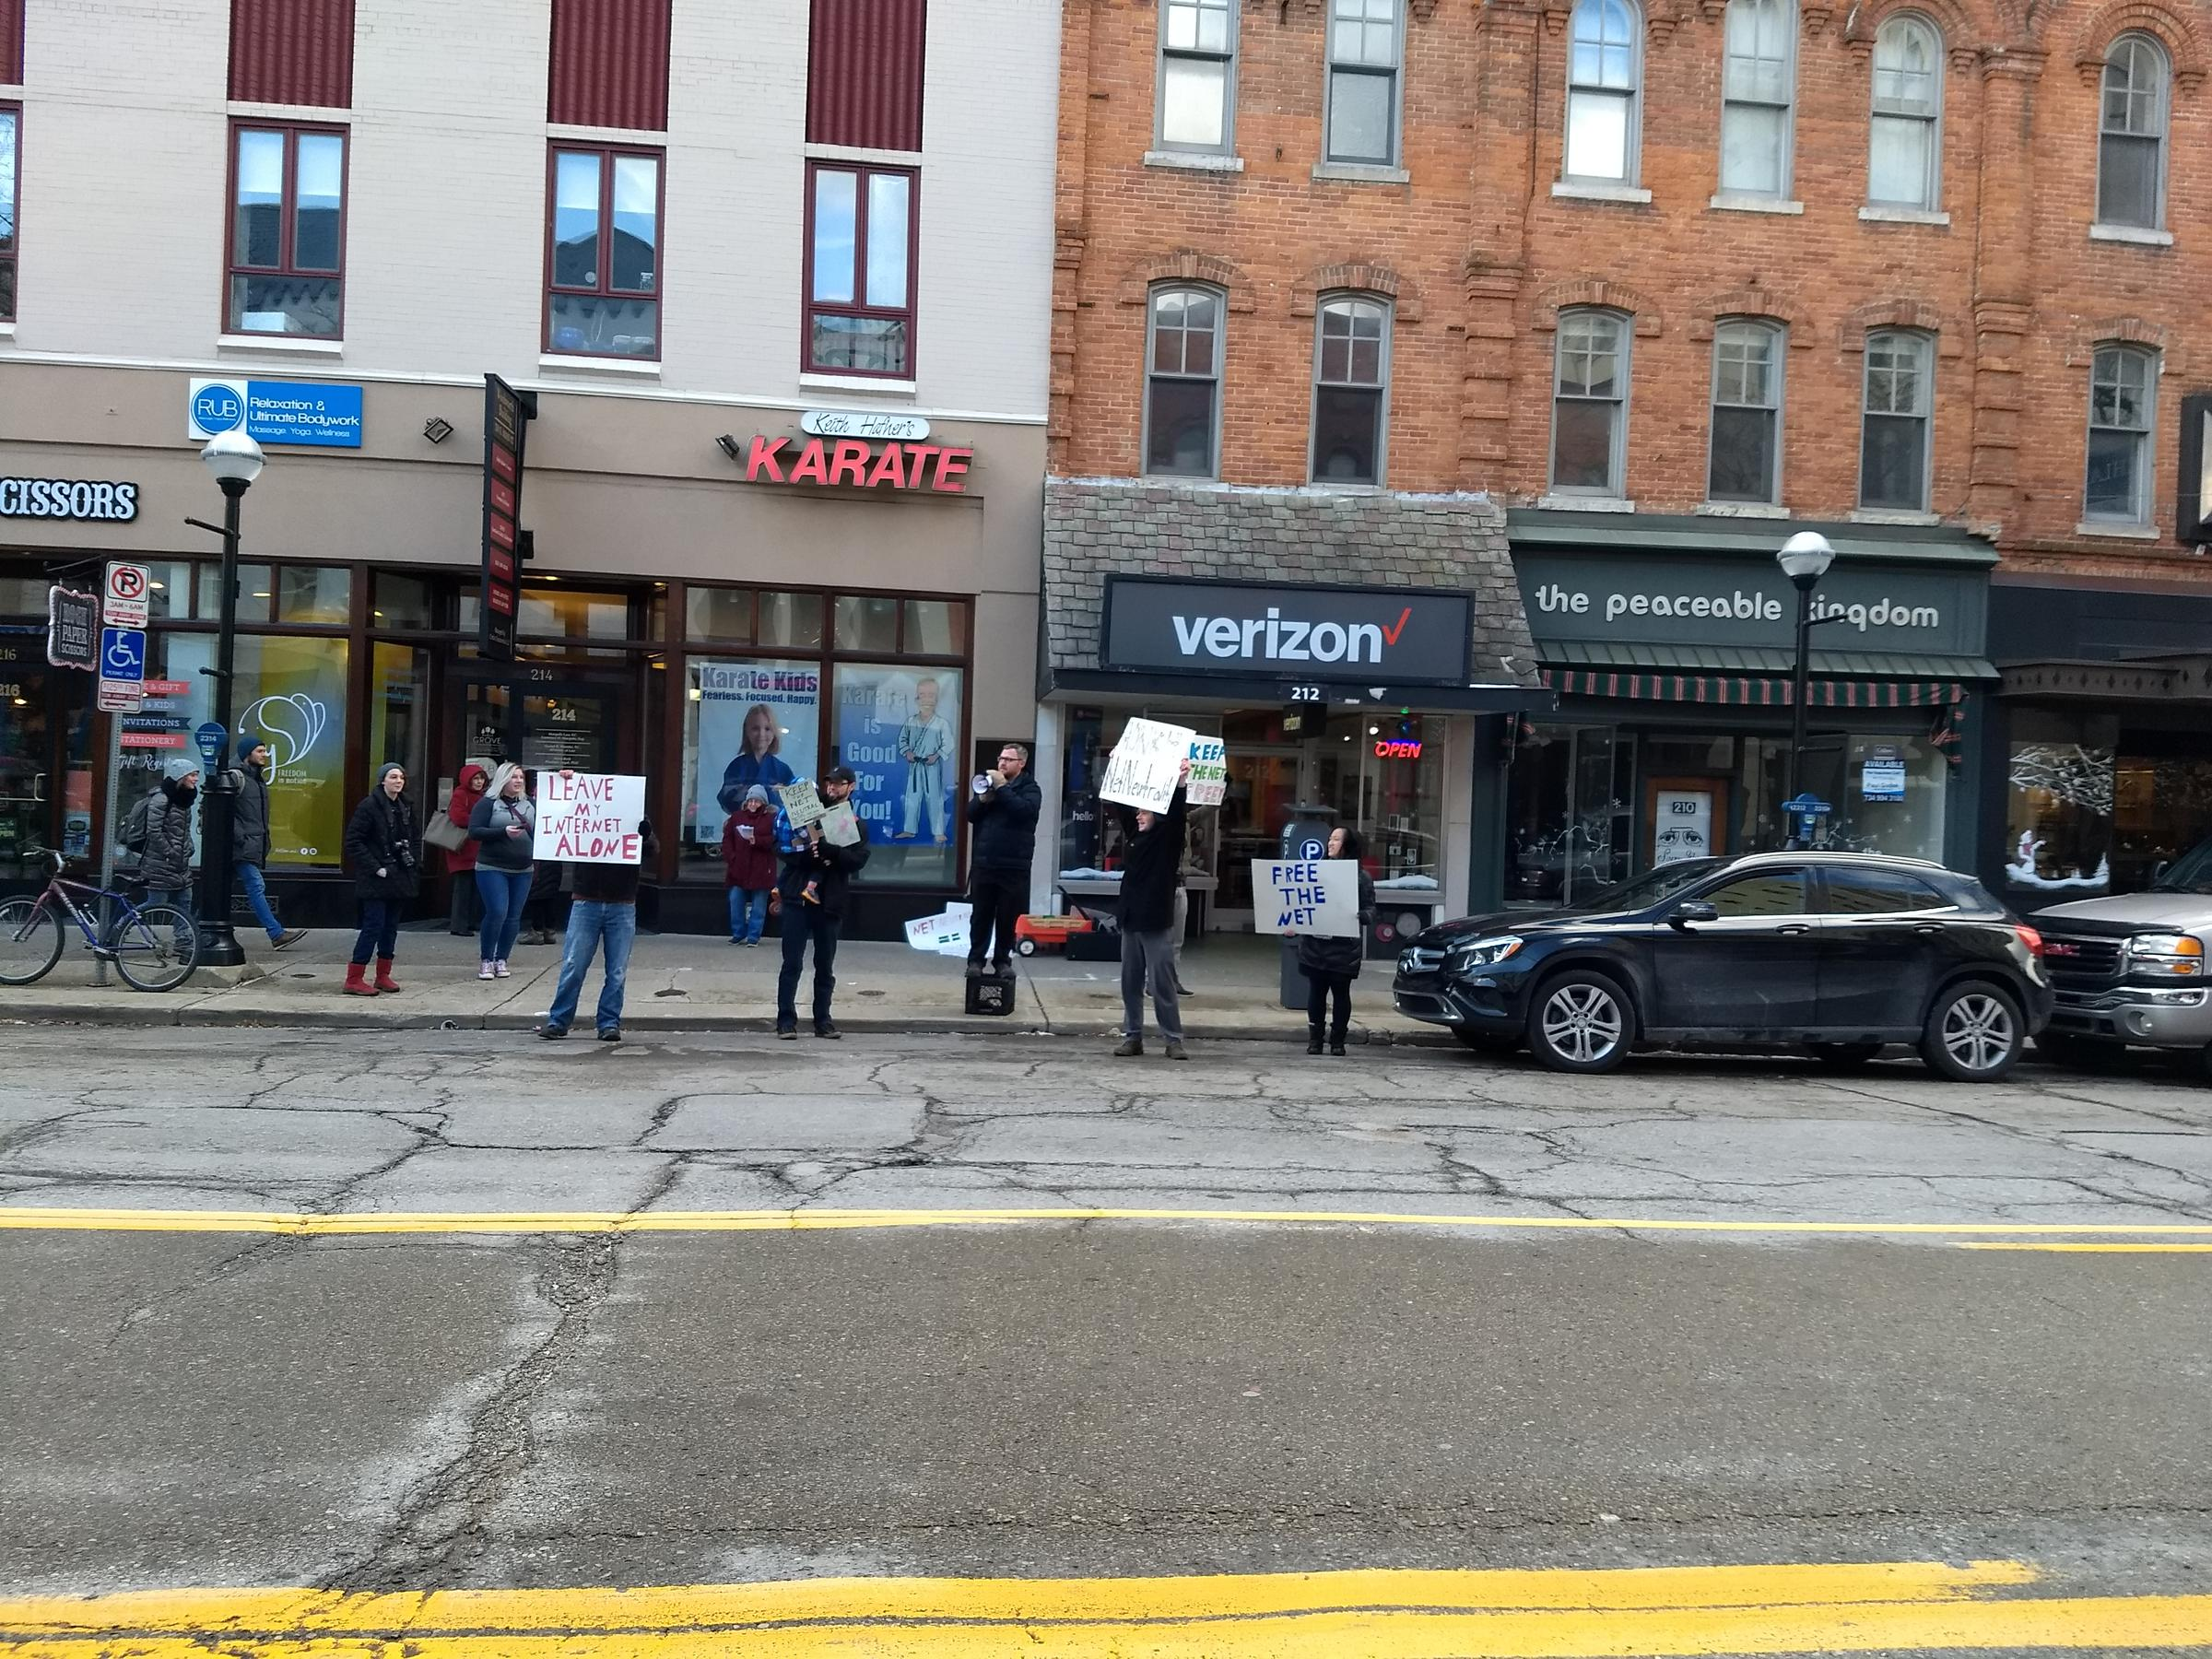 Activists gather at University Verizon to protest net neutrality rollback